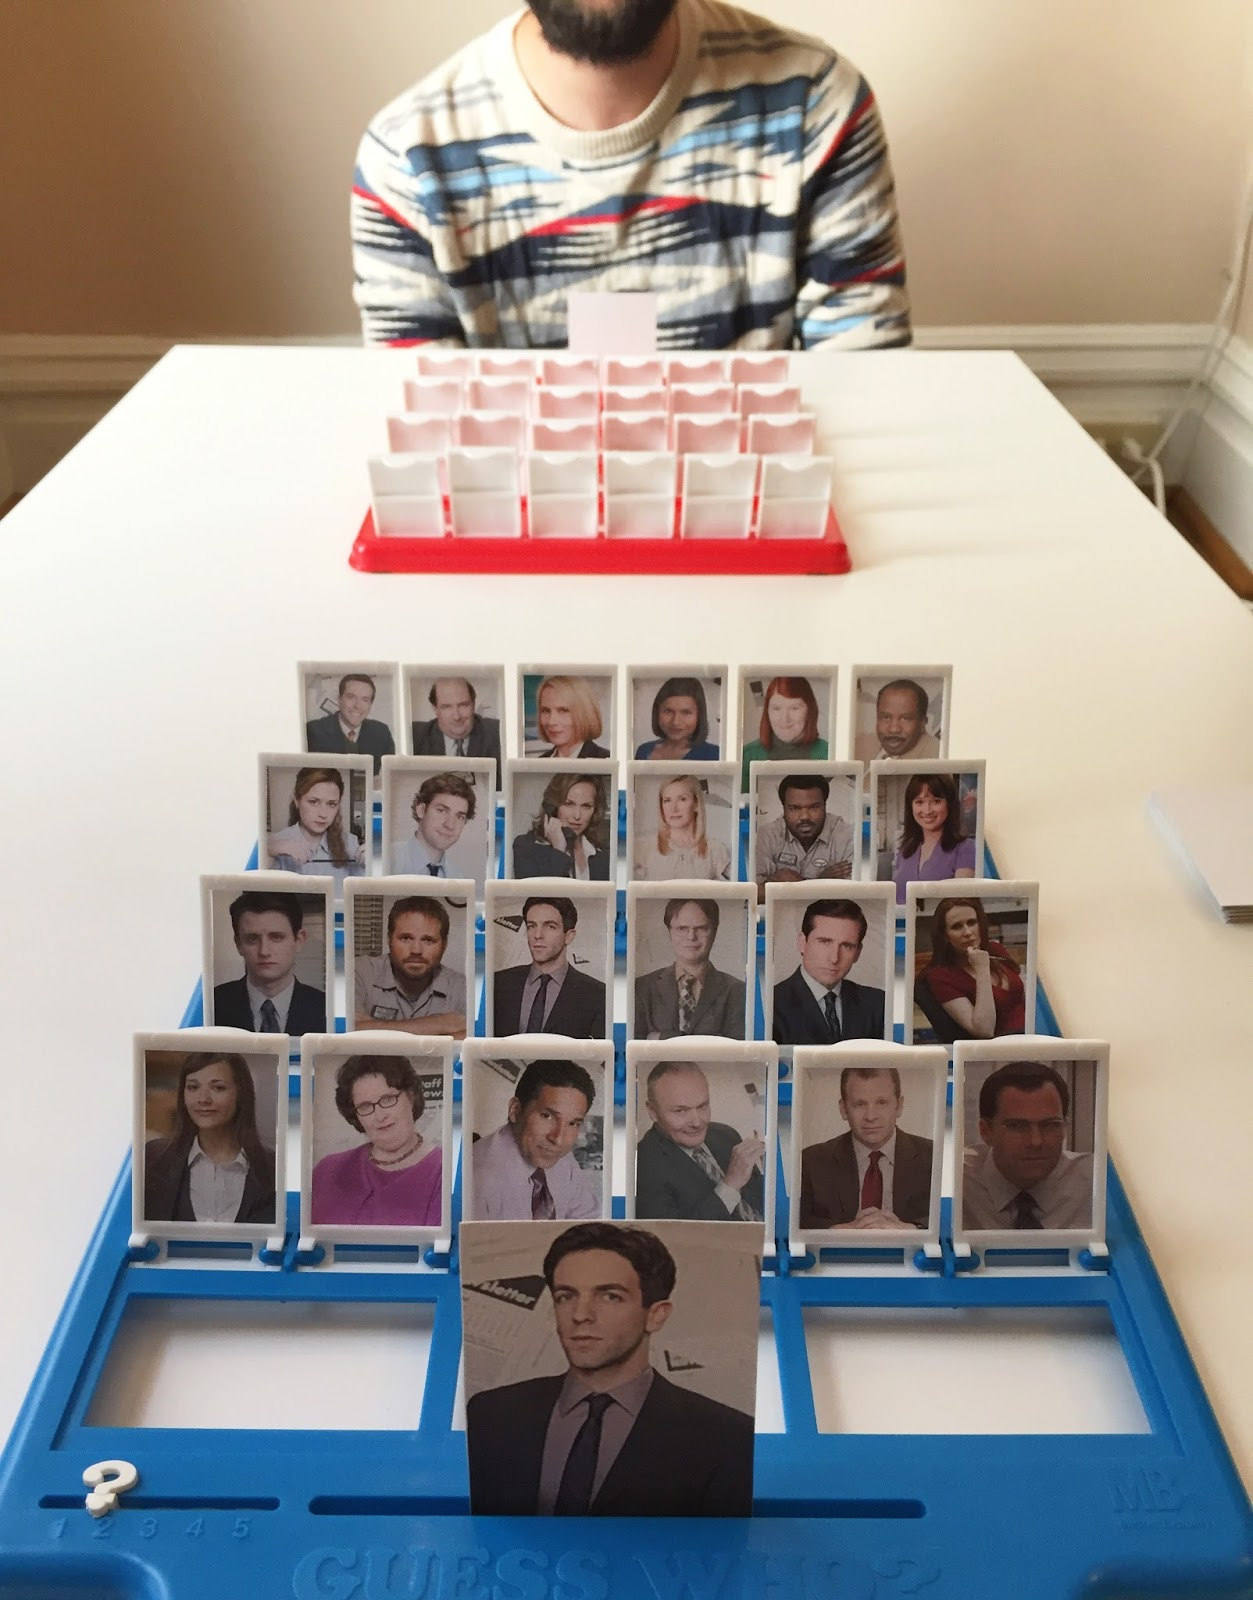 diy guess who game templates the surznick common room. Black Bedroom Furniture Sets. Home Design Ideas